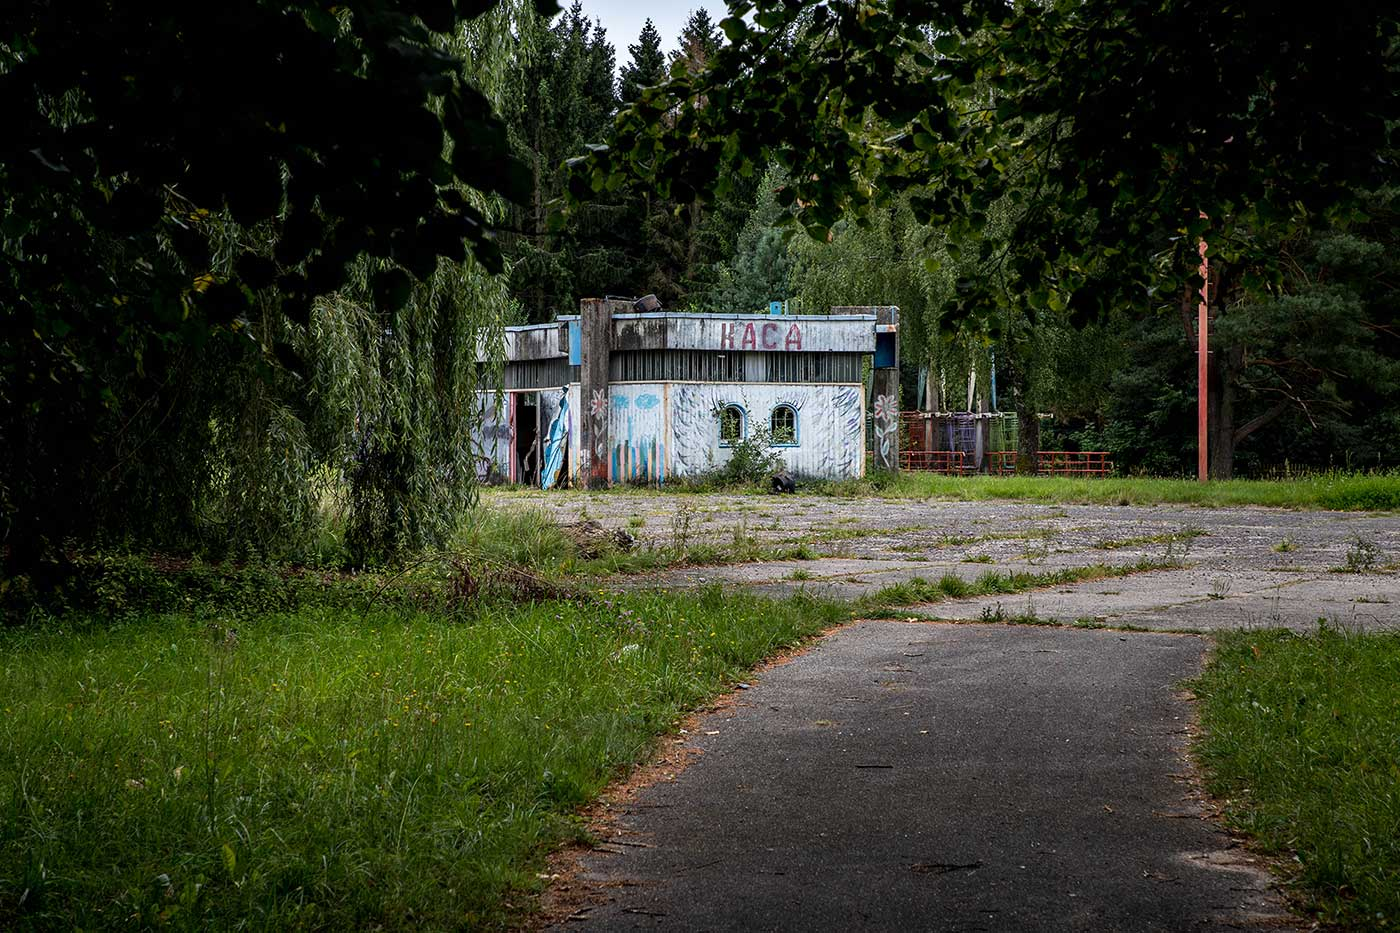 The overgrown path to the 'Children's World' amusement park in Elektrėnai, Lithuania.